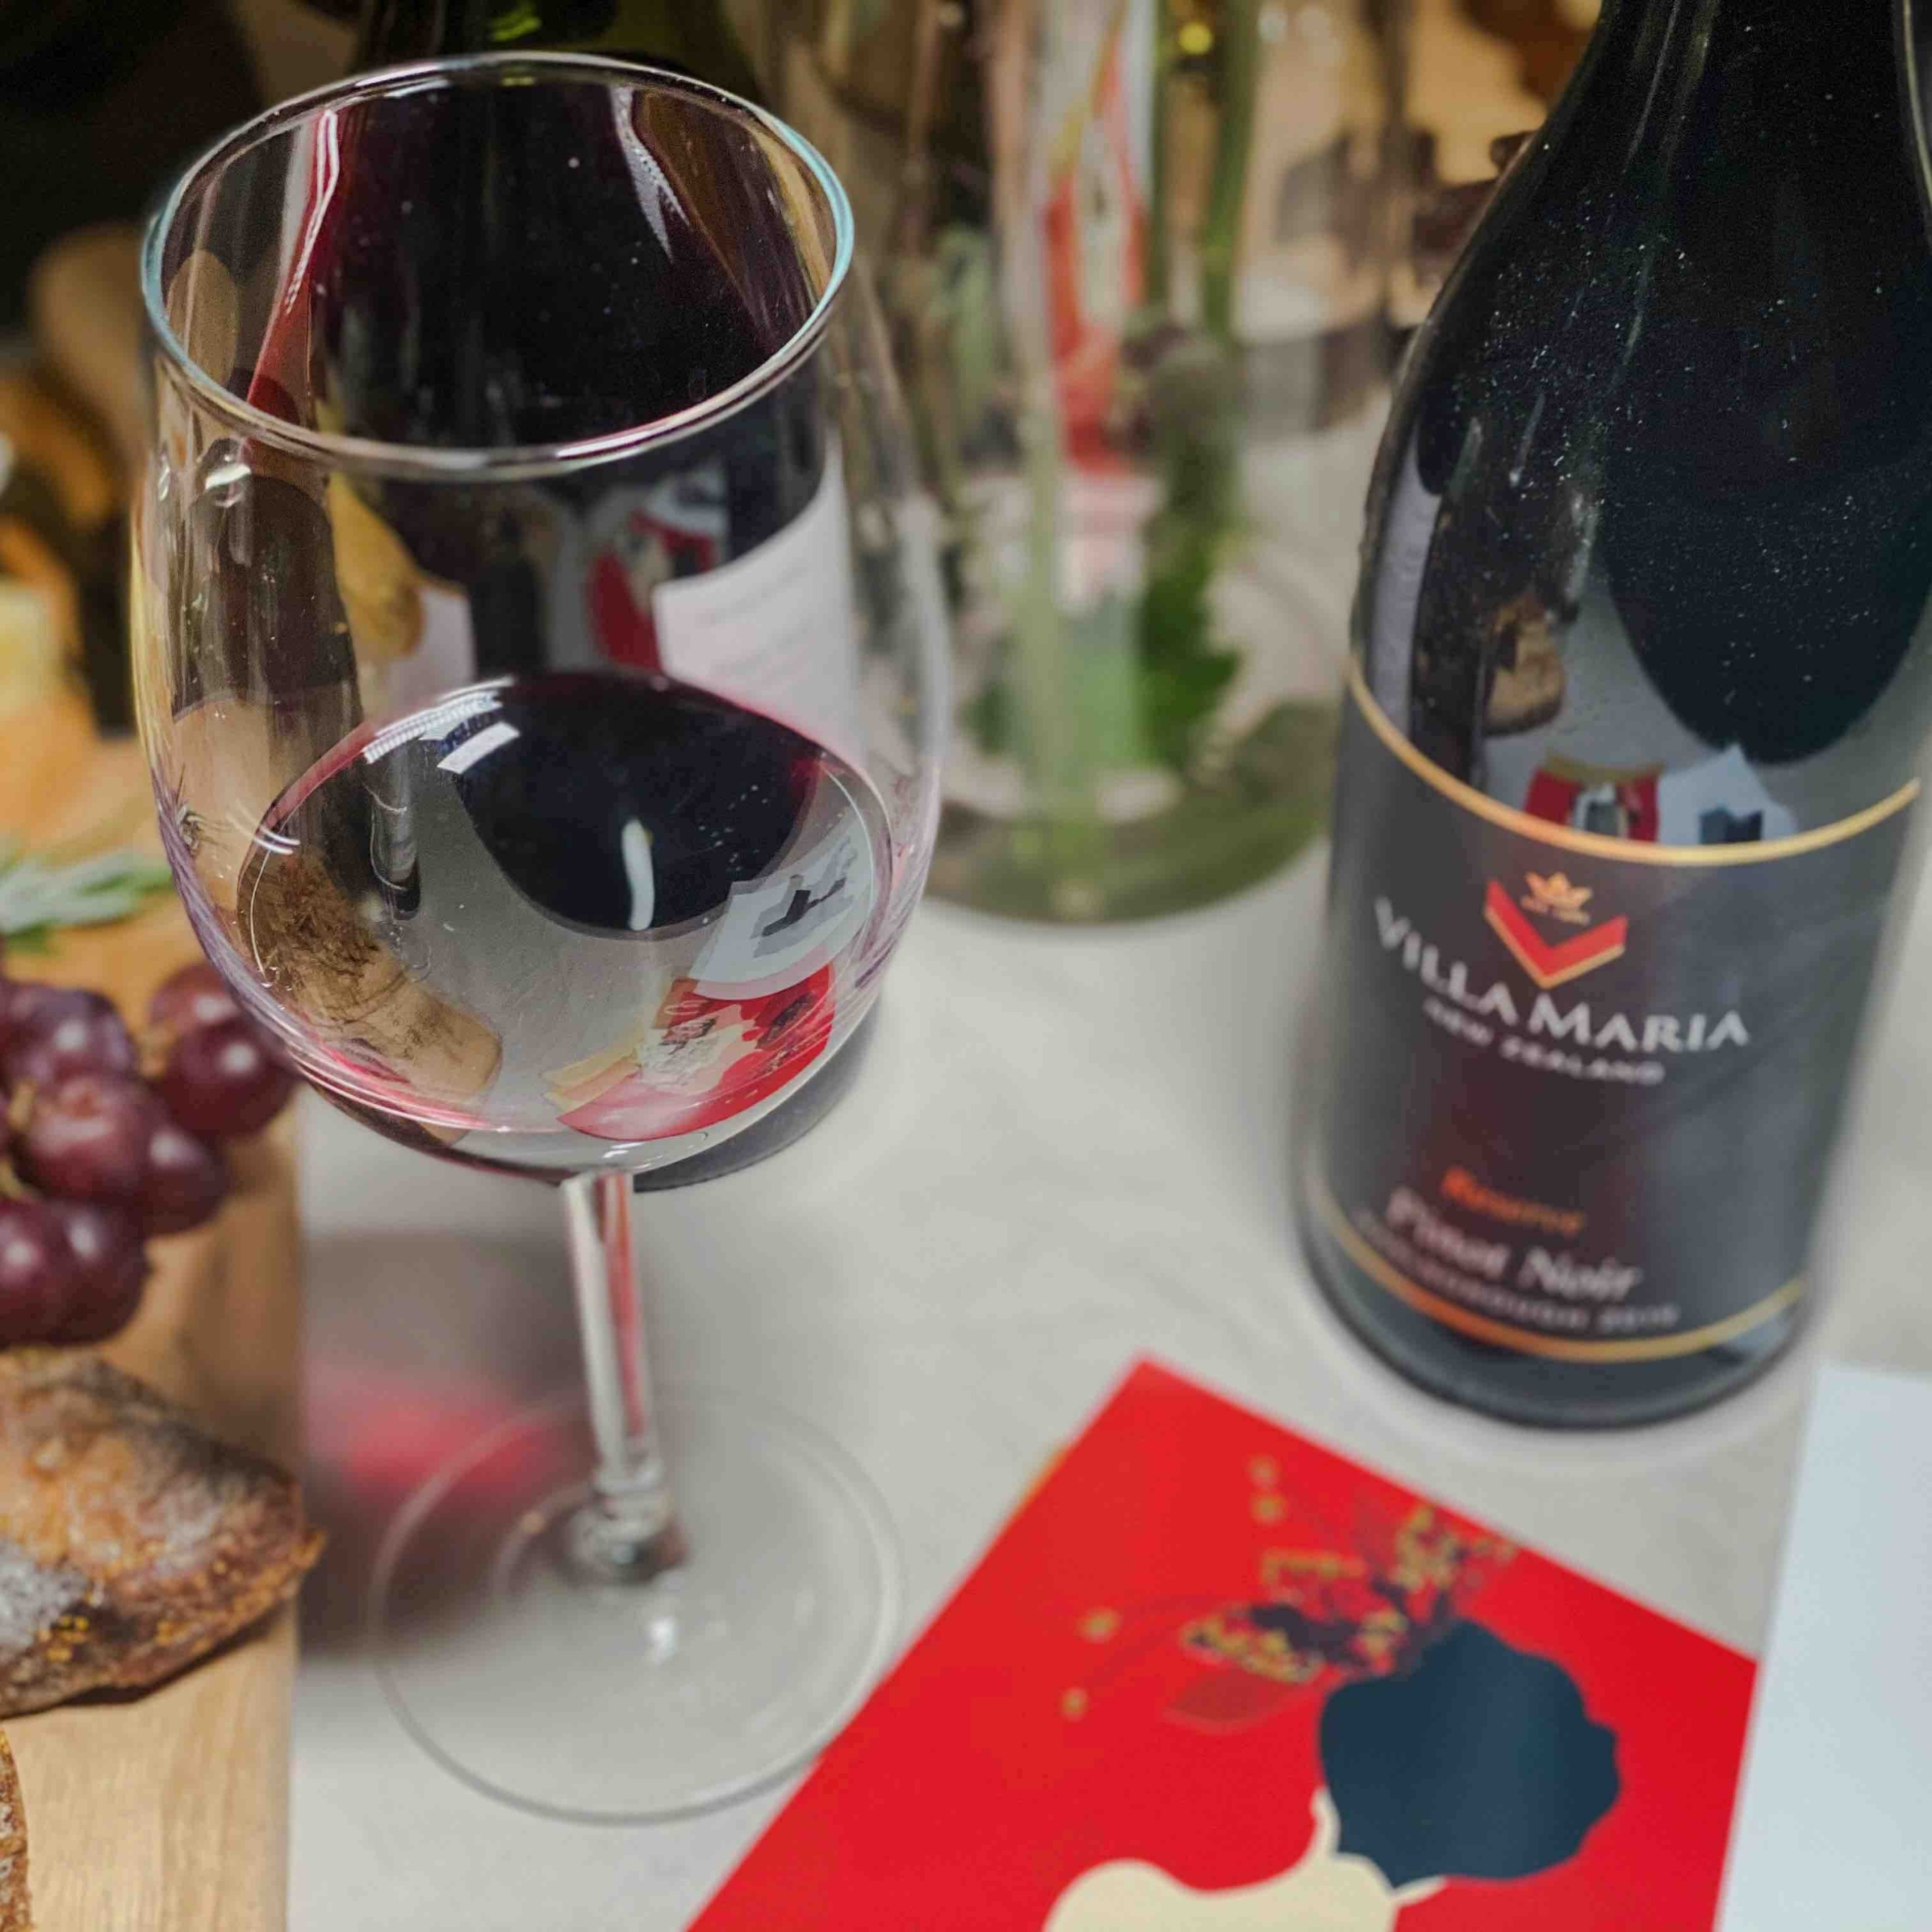 Villa Maria Pinot Noir Made Our Picks Of The Best Wine Gifts For Mother's Day